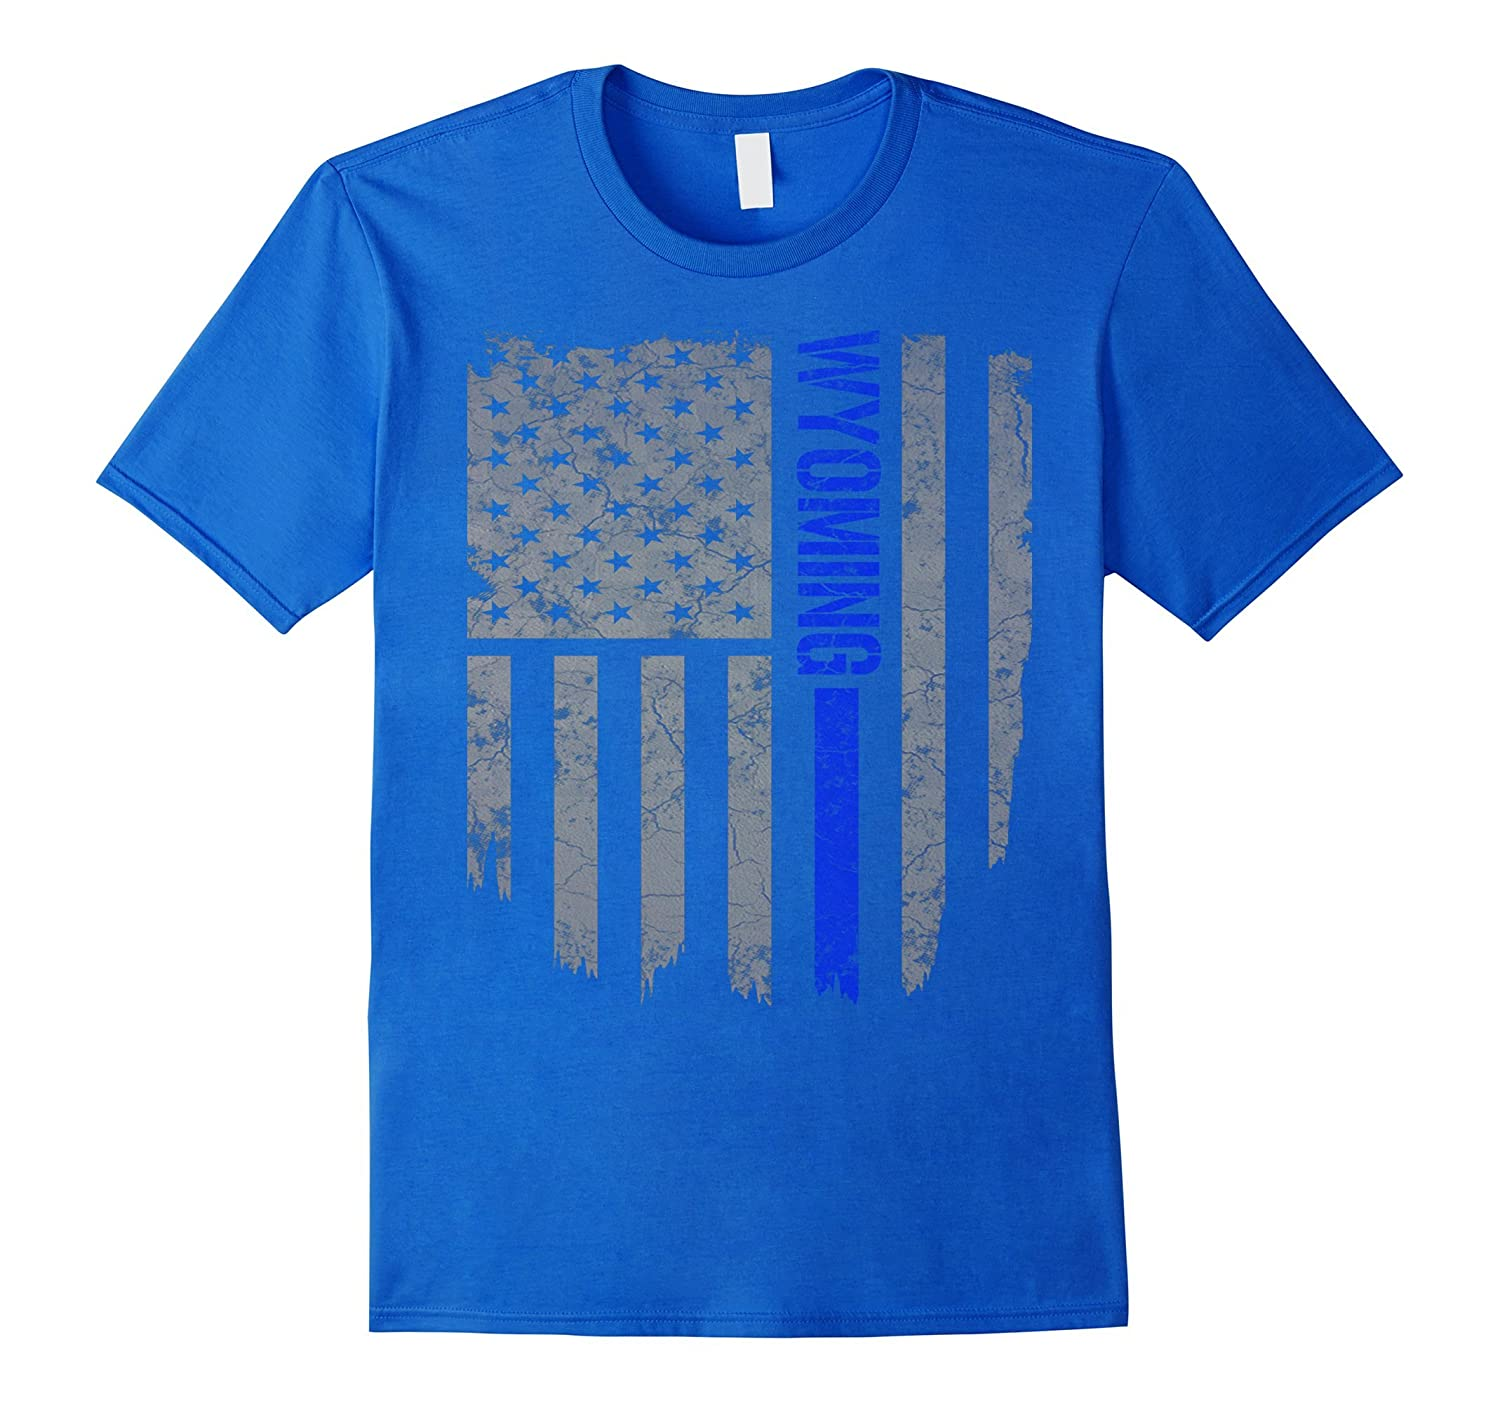 Wyoming Thin Blue Line American Flag T-shirt-Vaci